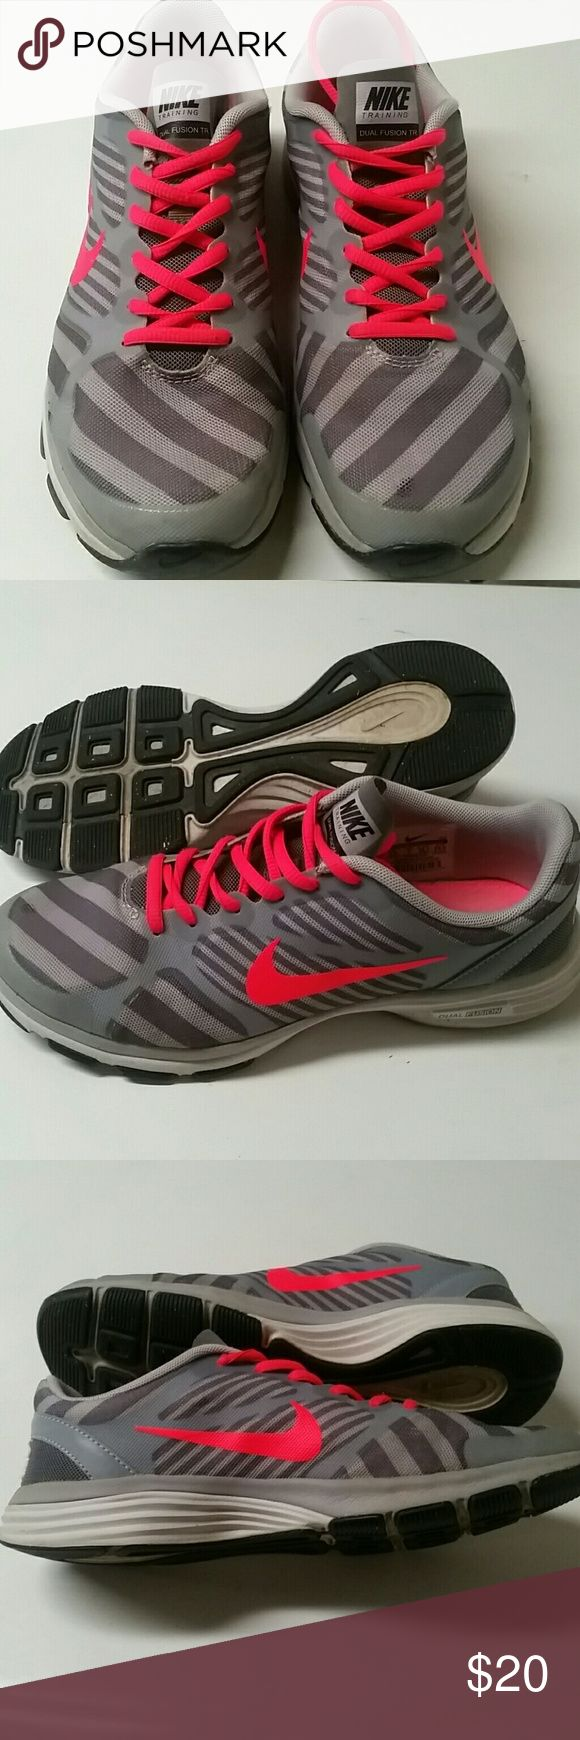 Nike Dual Fusion TR US 7.5 EUR 38.5 CM 24.5 Grey & neon pink 7.5 Nike Dual Fusion TR EUR 38.5 CM 24.5 Nike Shoes